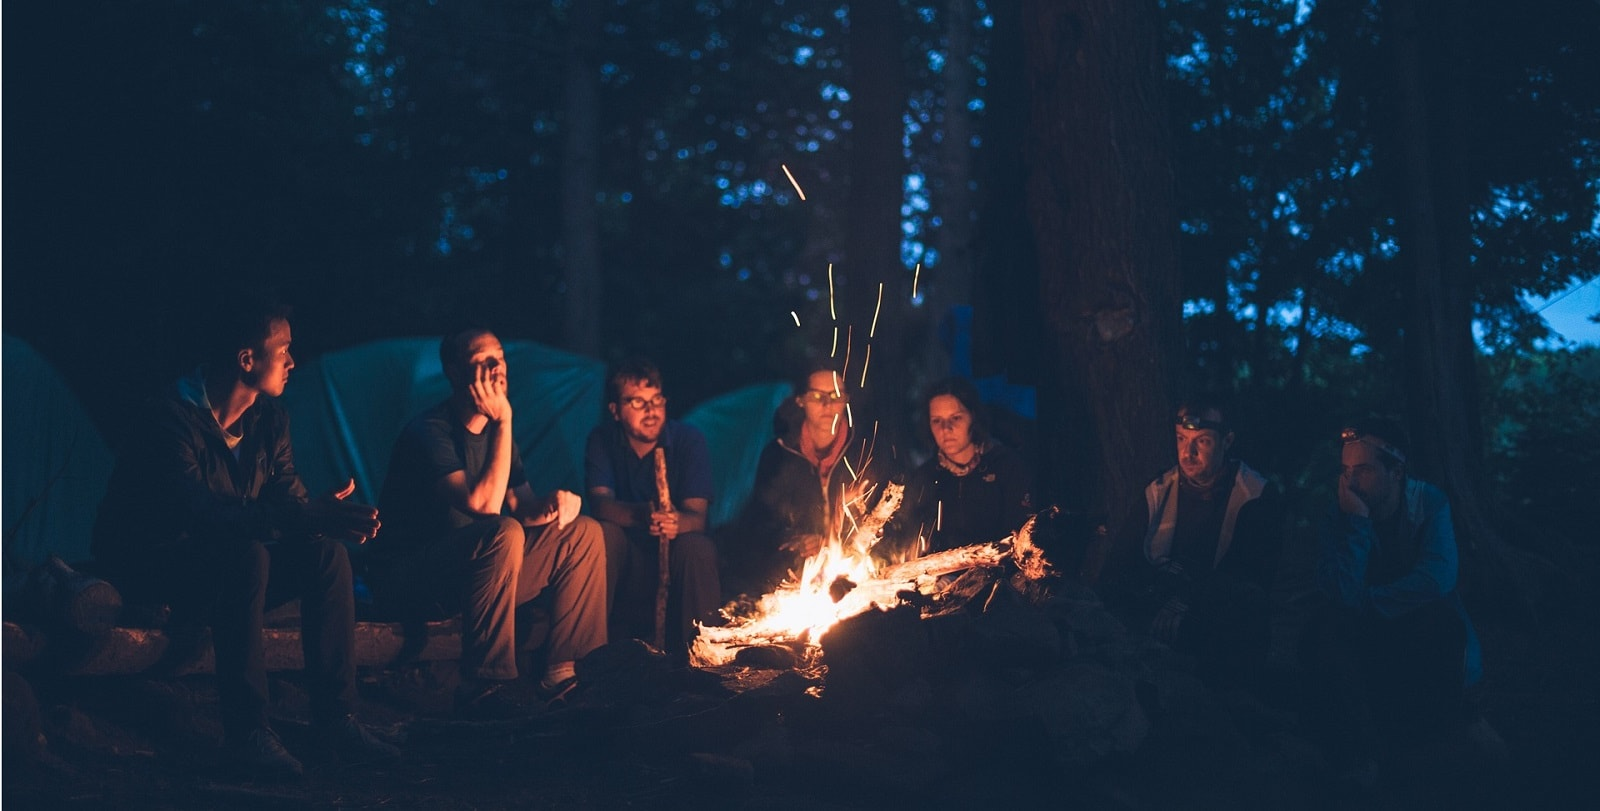 Club Event - Campfire Session - EventBookings